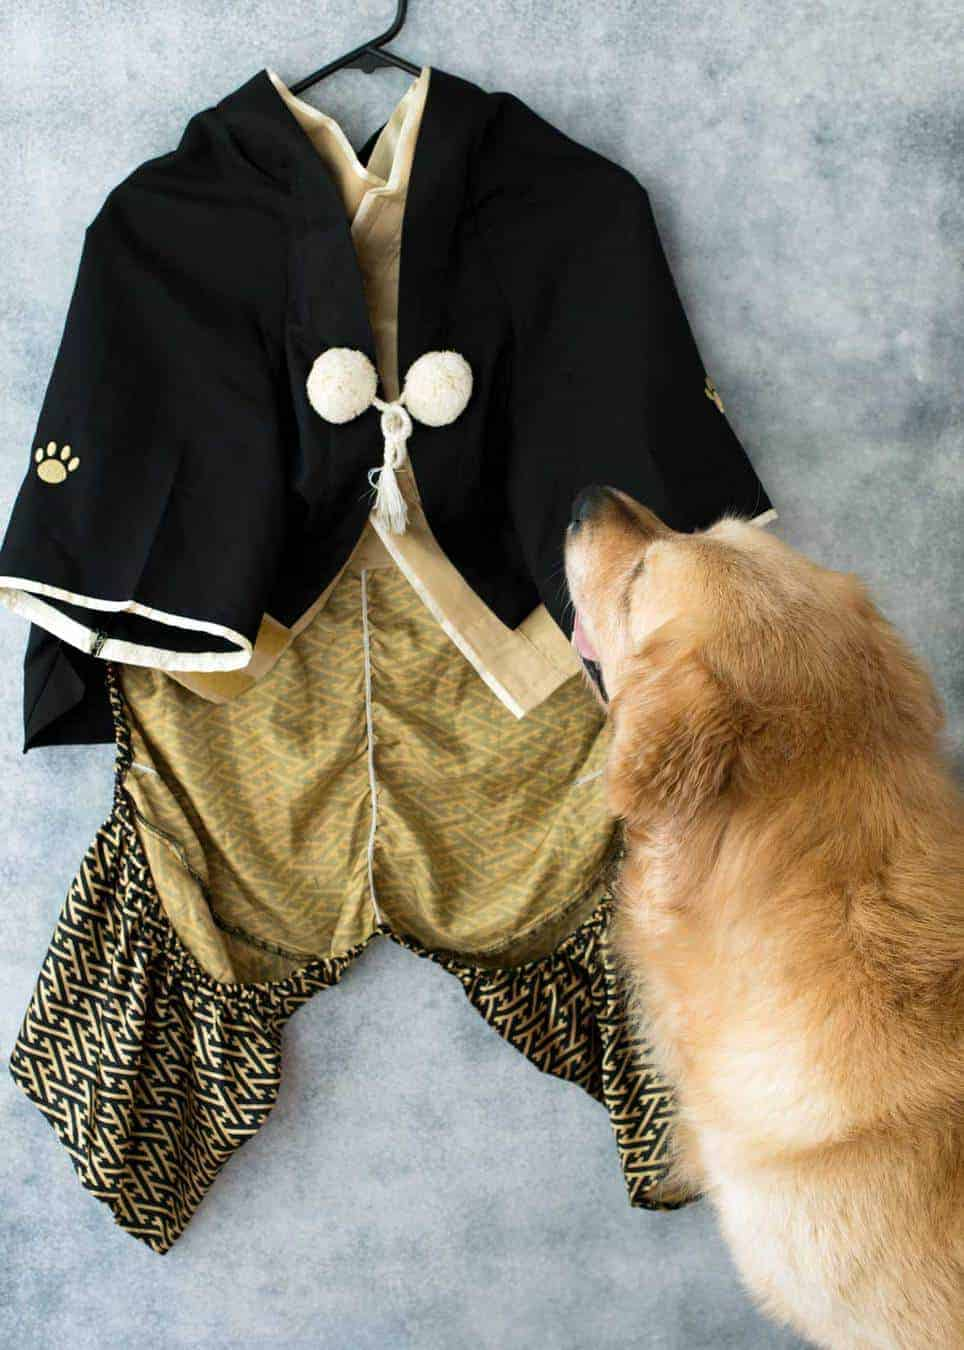 Dozer the golden retriever dog looking fearfully at dog outfit kimono